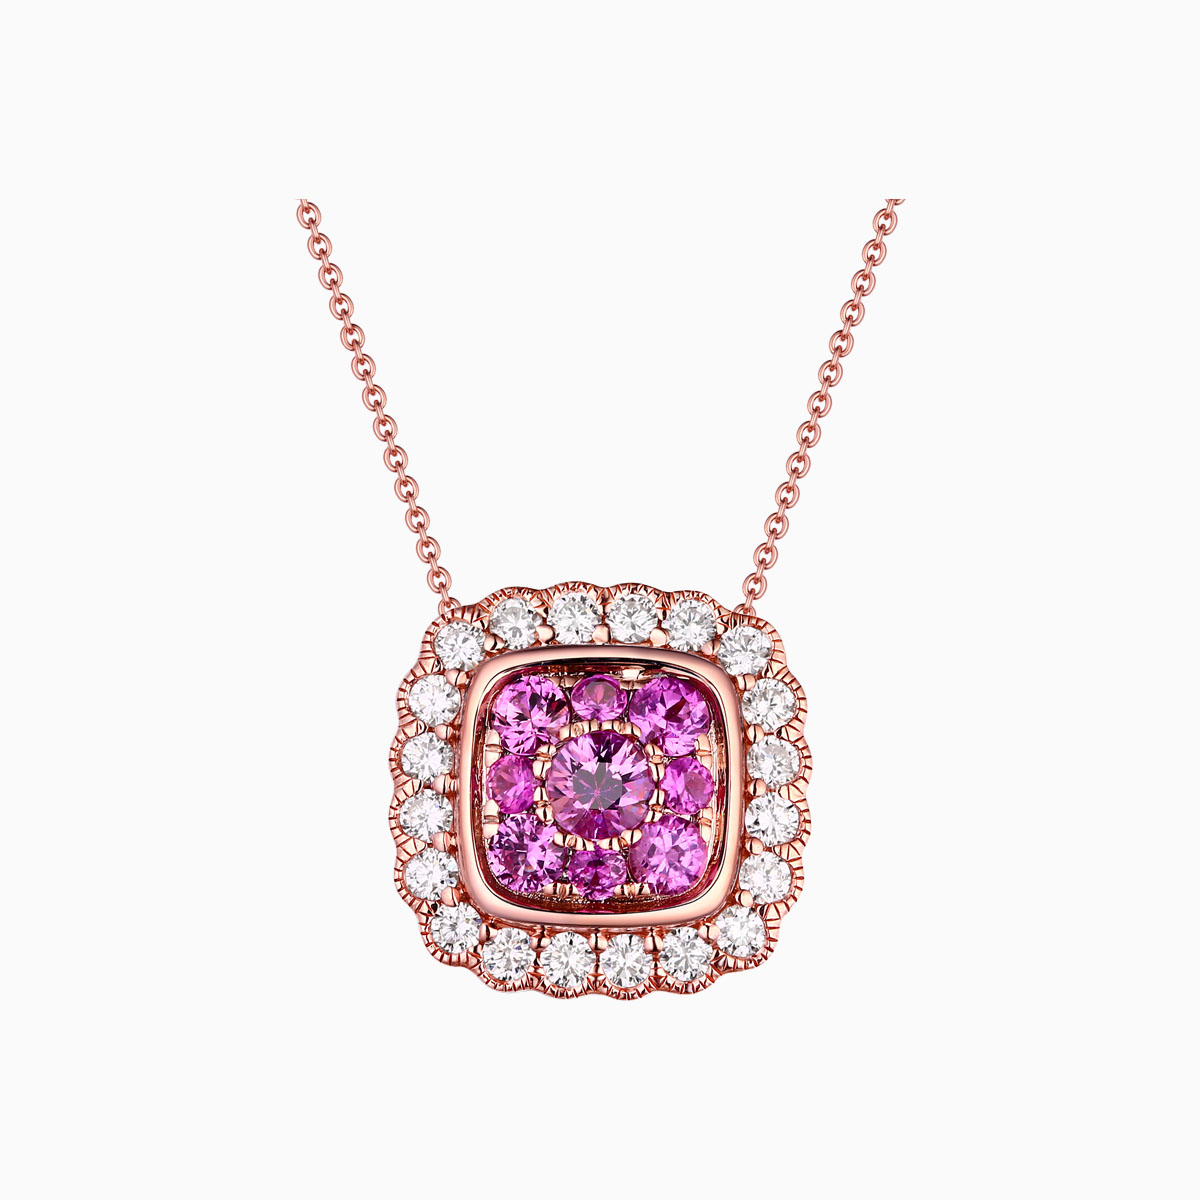 P21864PSA – 14K Rose Gold Diamond Pendant, 0.92 TCW